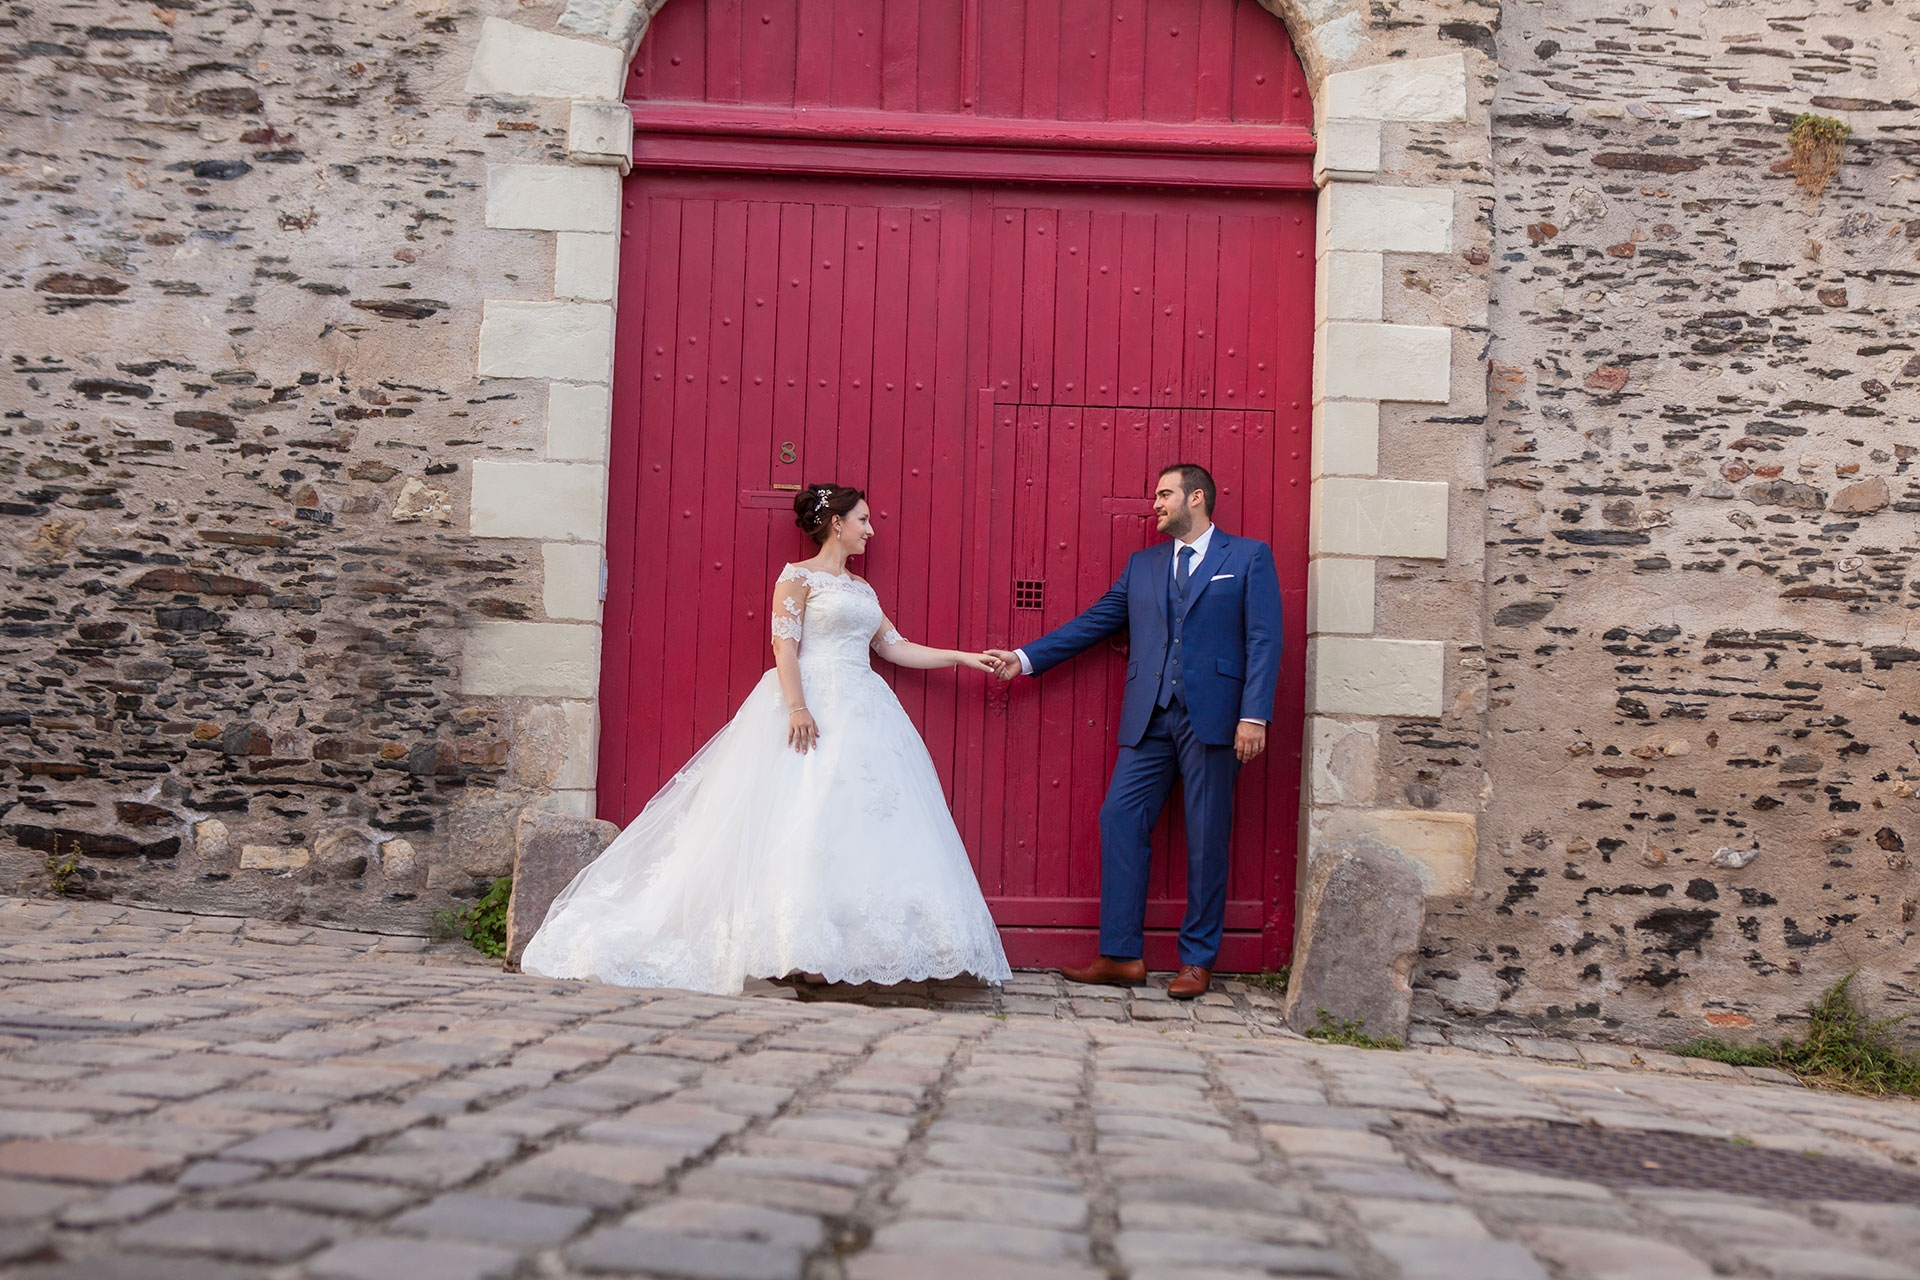 particuliers-evenements-mariage-oui-tiphaine&rudy-69